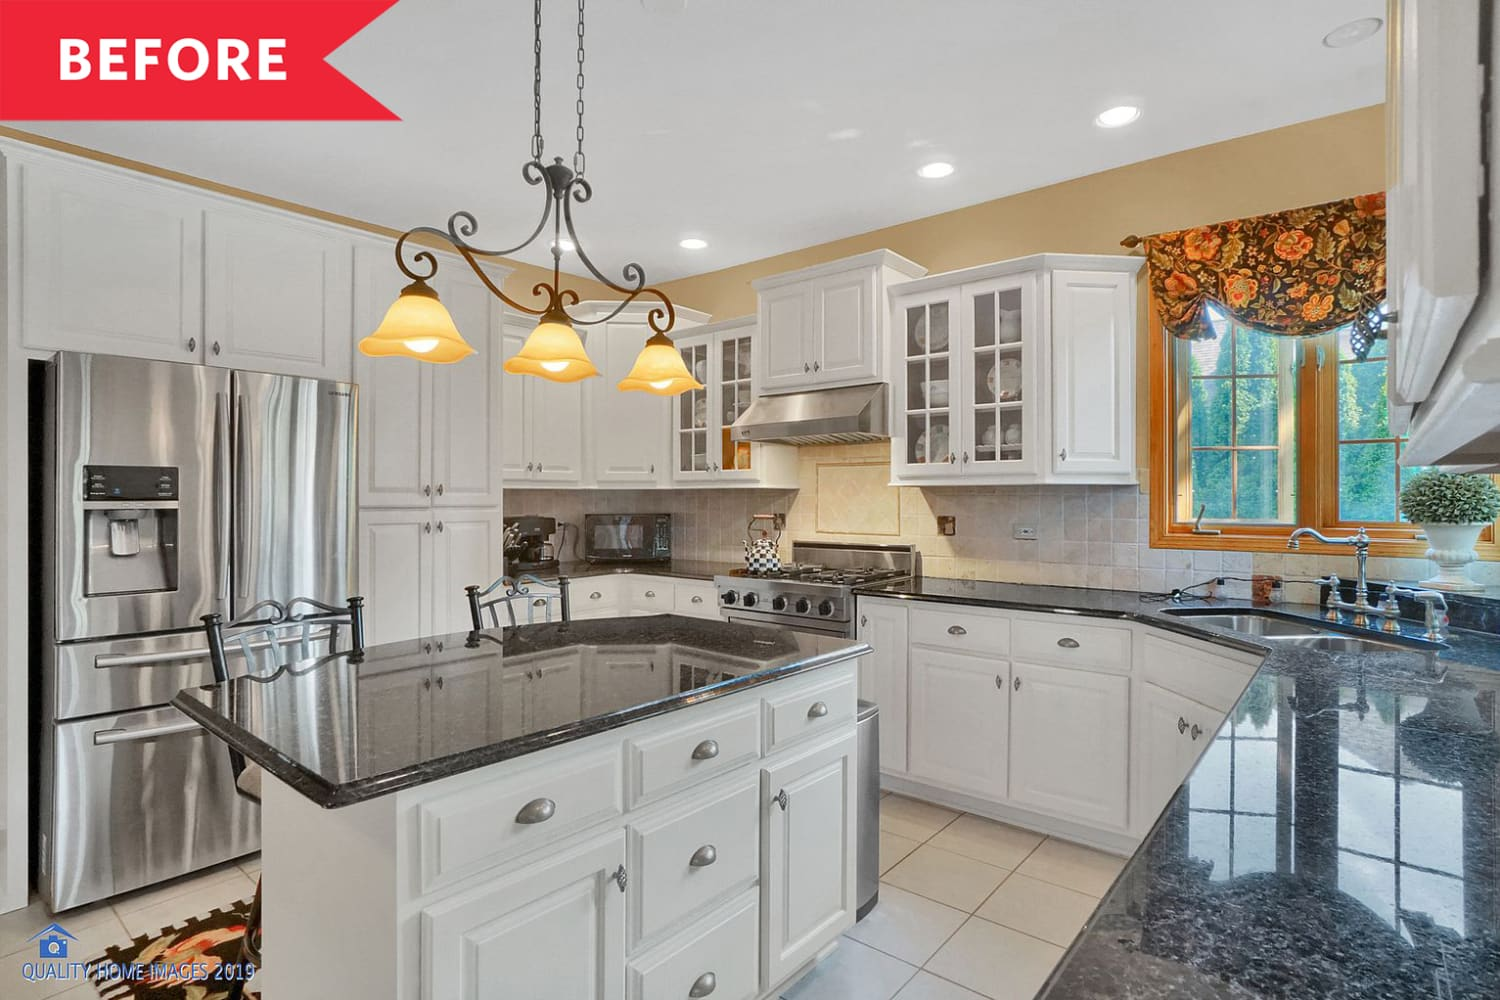 Before and After: A Mismatched Kitchen Gets a Chic, All-White Revamp for $25,000